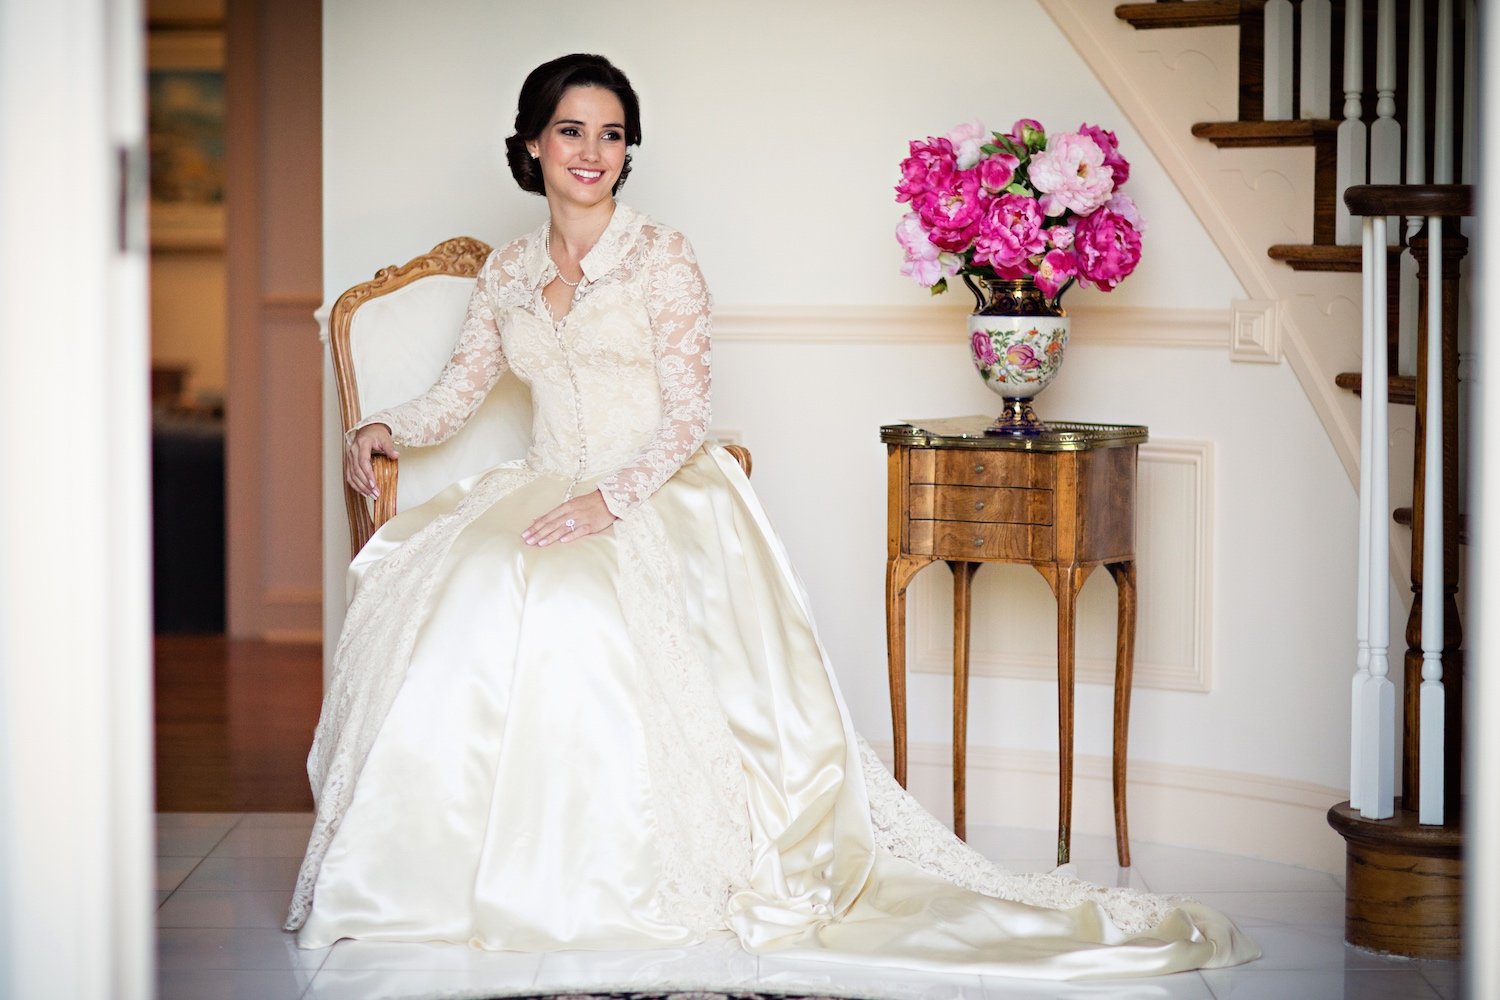 Wedding Gown Preservation - How to Preserve Your Bridal Gown ...